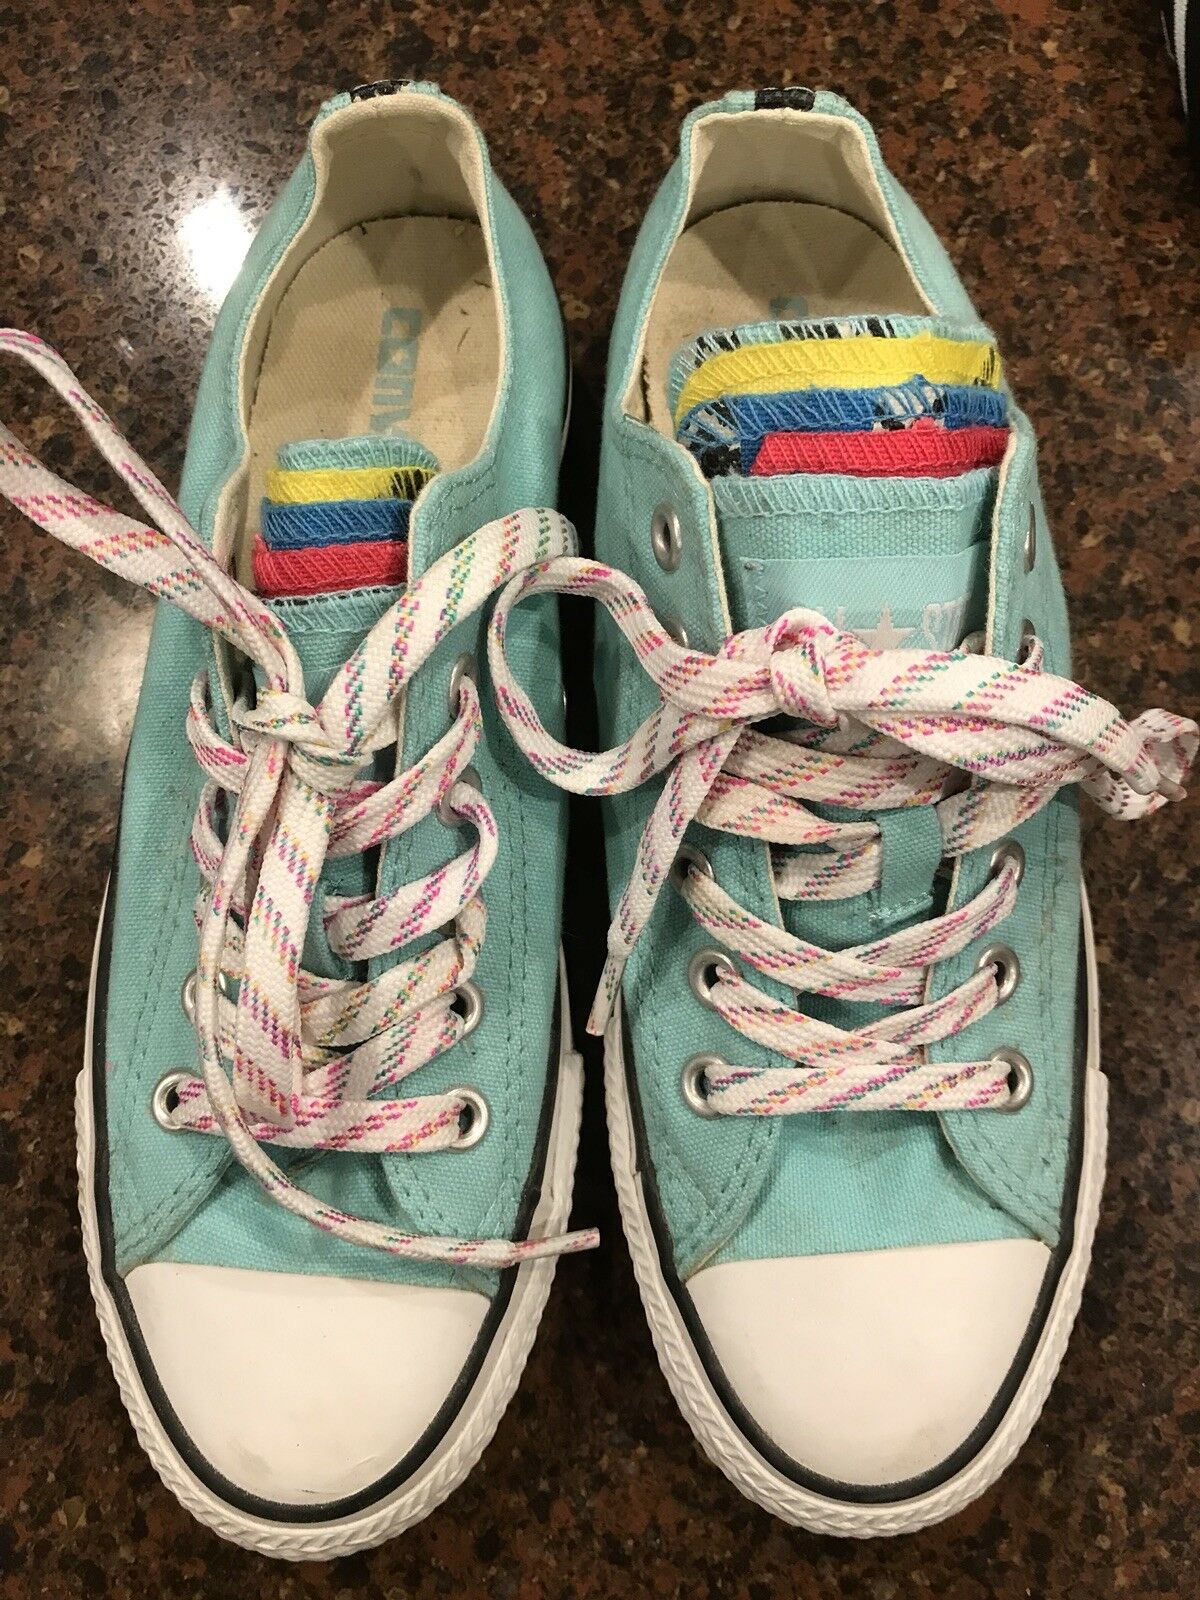 Turquoise Converse With Rainbow Women's Tongues - Size 7 Women's Rainbow f04b5a